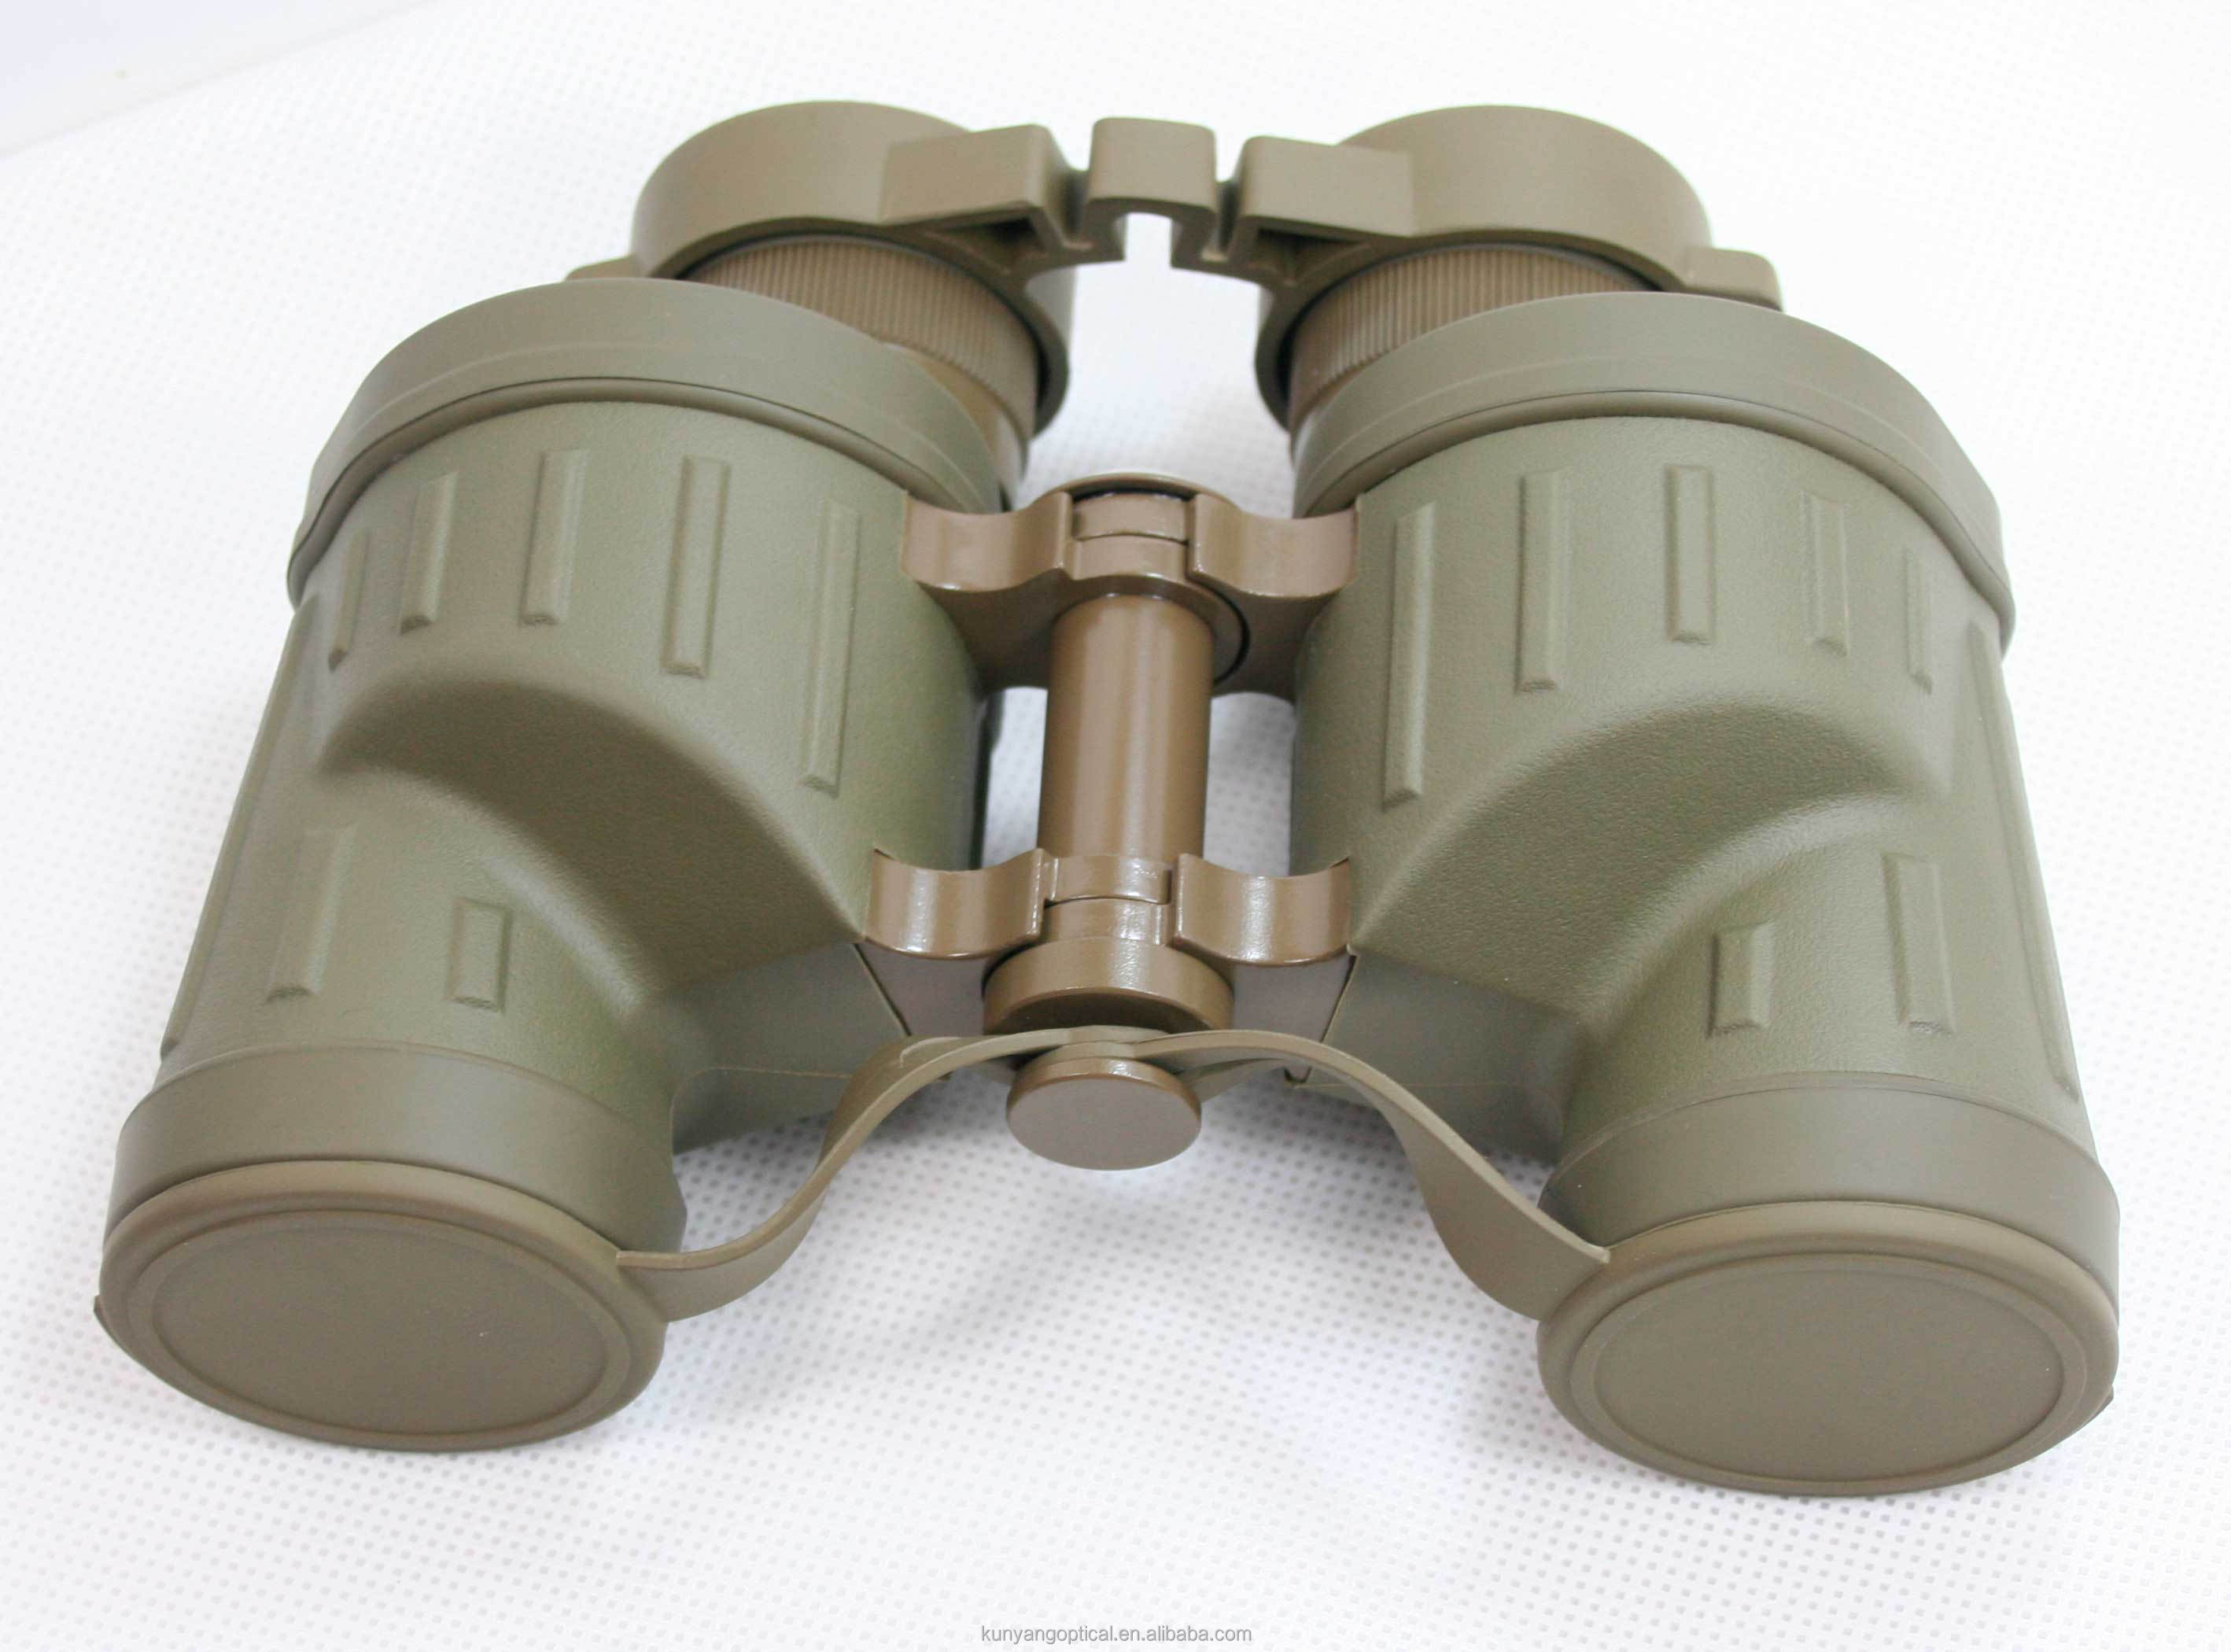 8x30 Military waterproof fogproof shockproof large eyepiece binocular